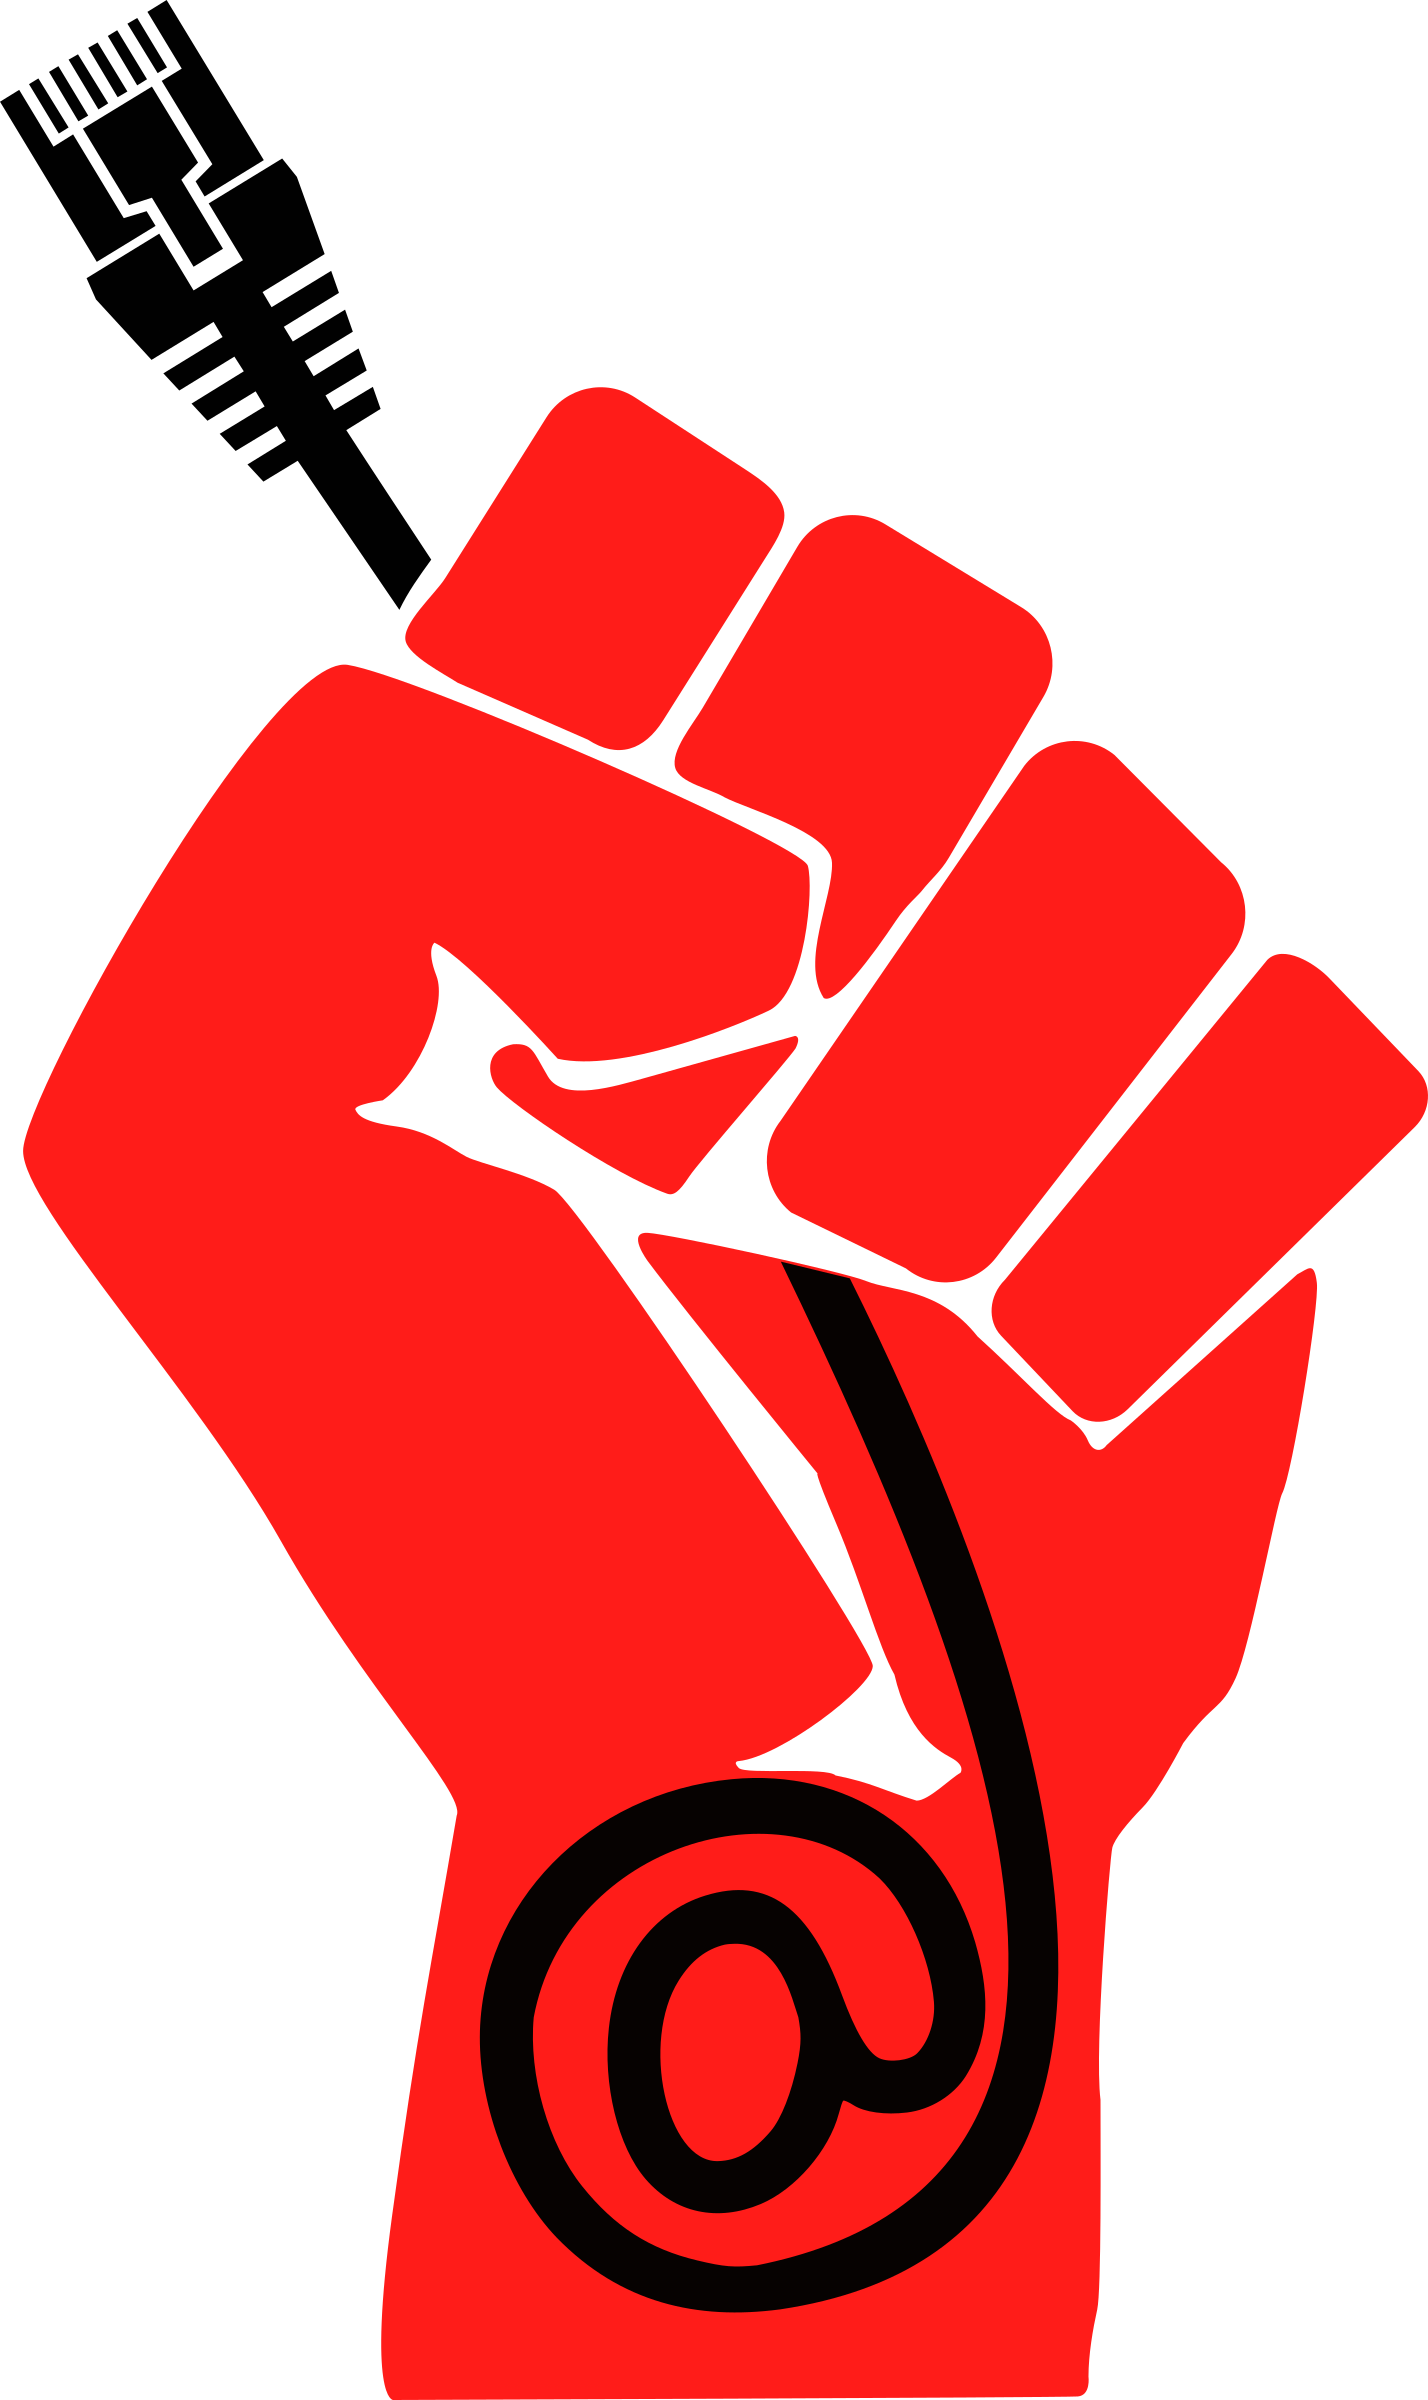 Net neutrality png. Clipart big image